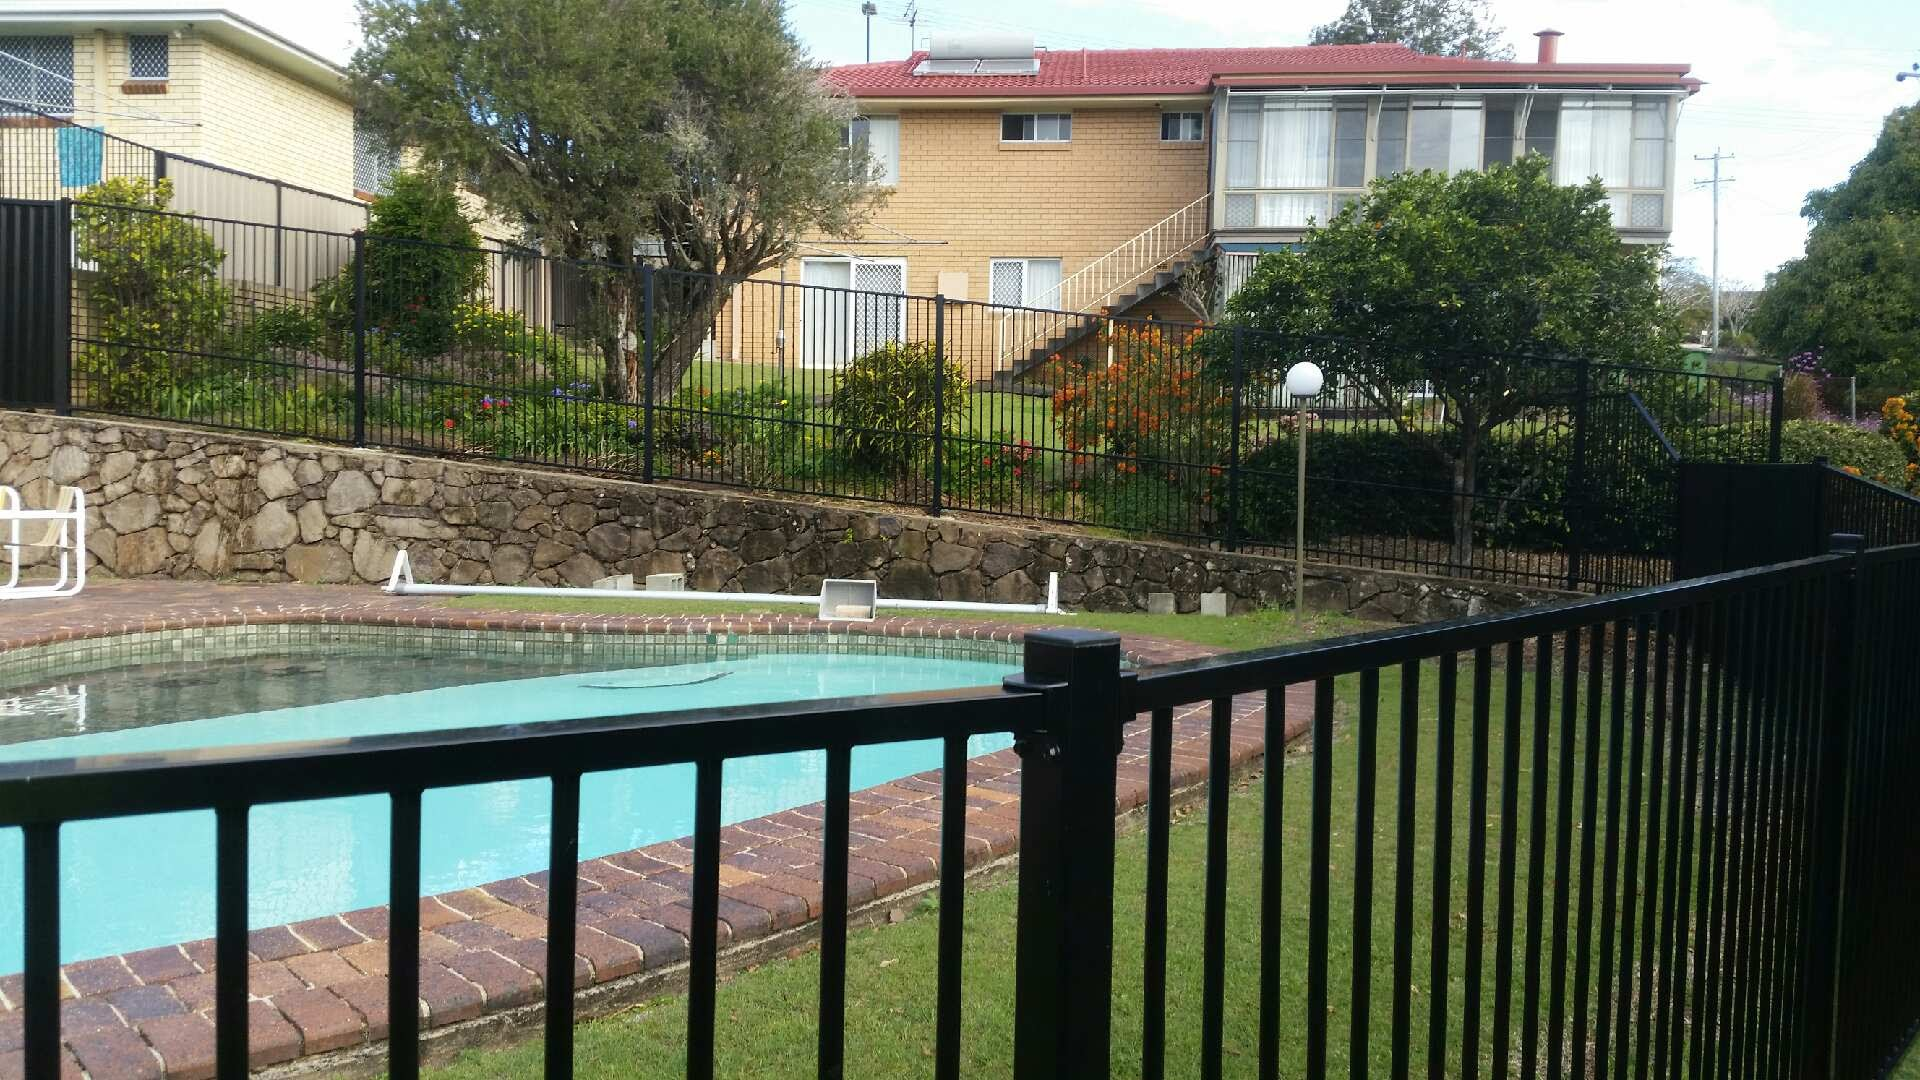 Aluminium Pool Fencing - Available in Black & other Colours